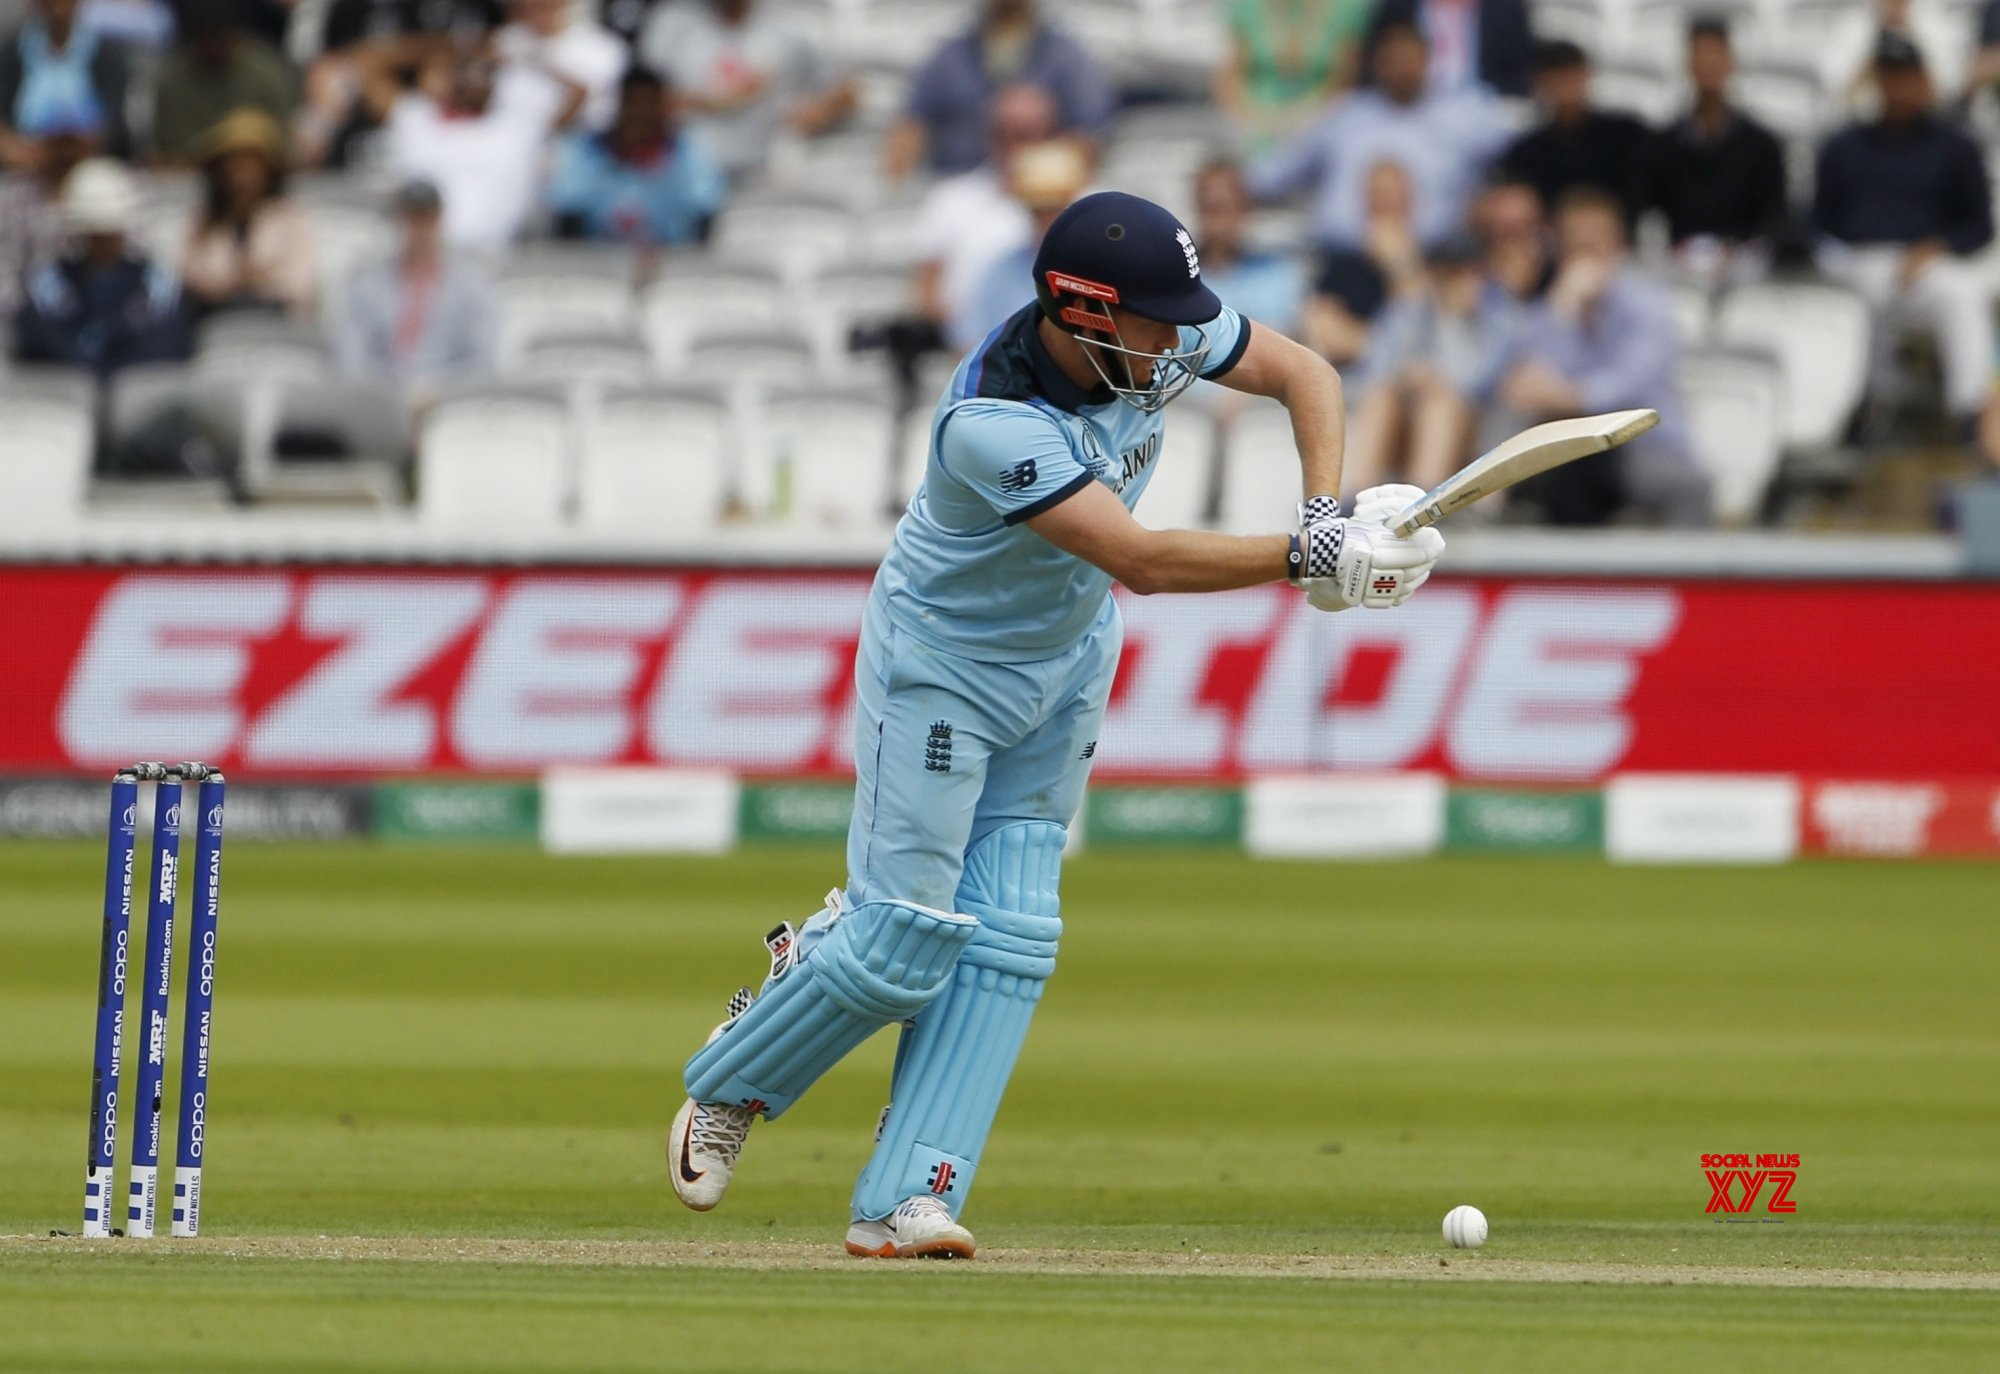 London (England): 2019 World Cup - Final - New Zealand Vs England (Batch - 30) #Gallery